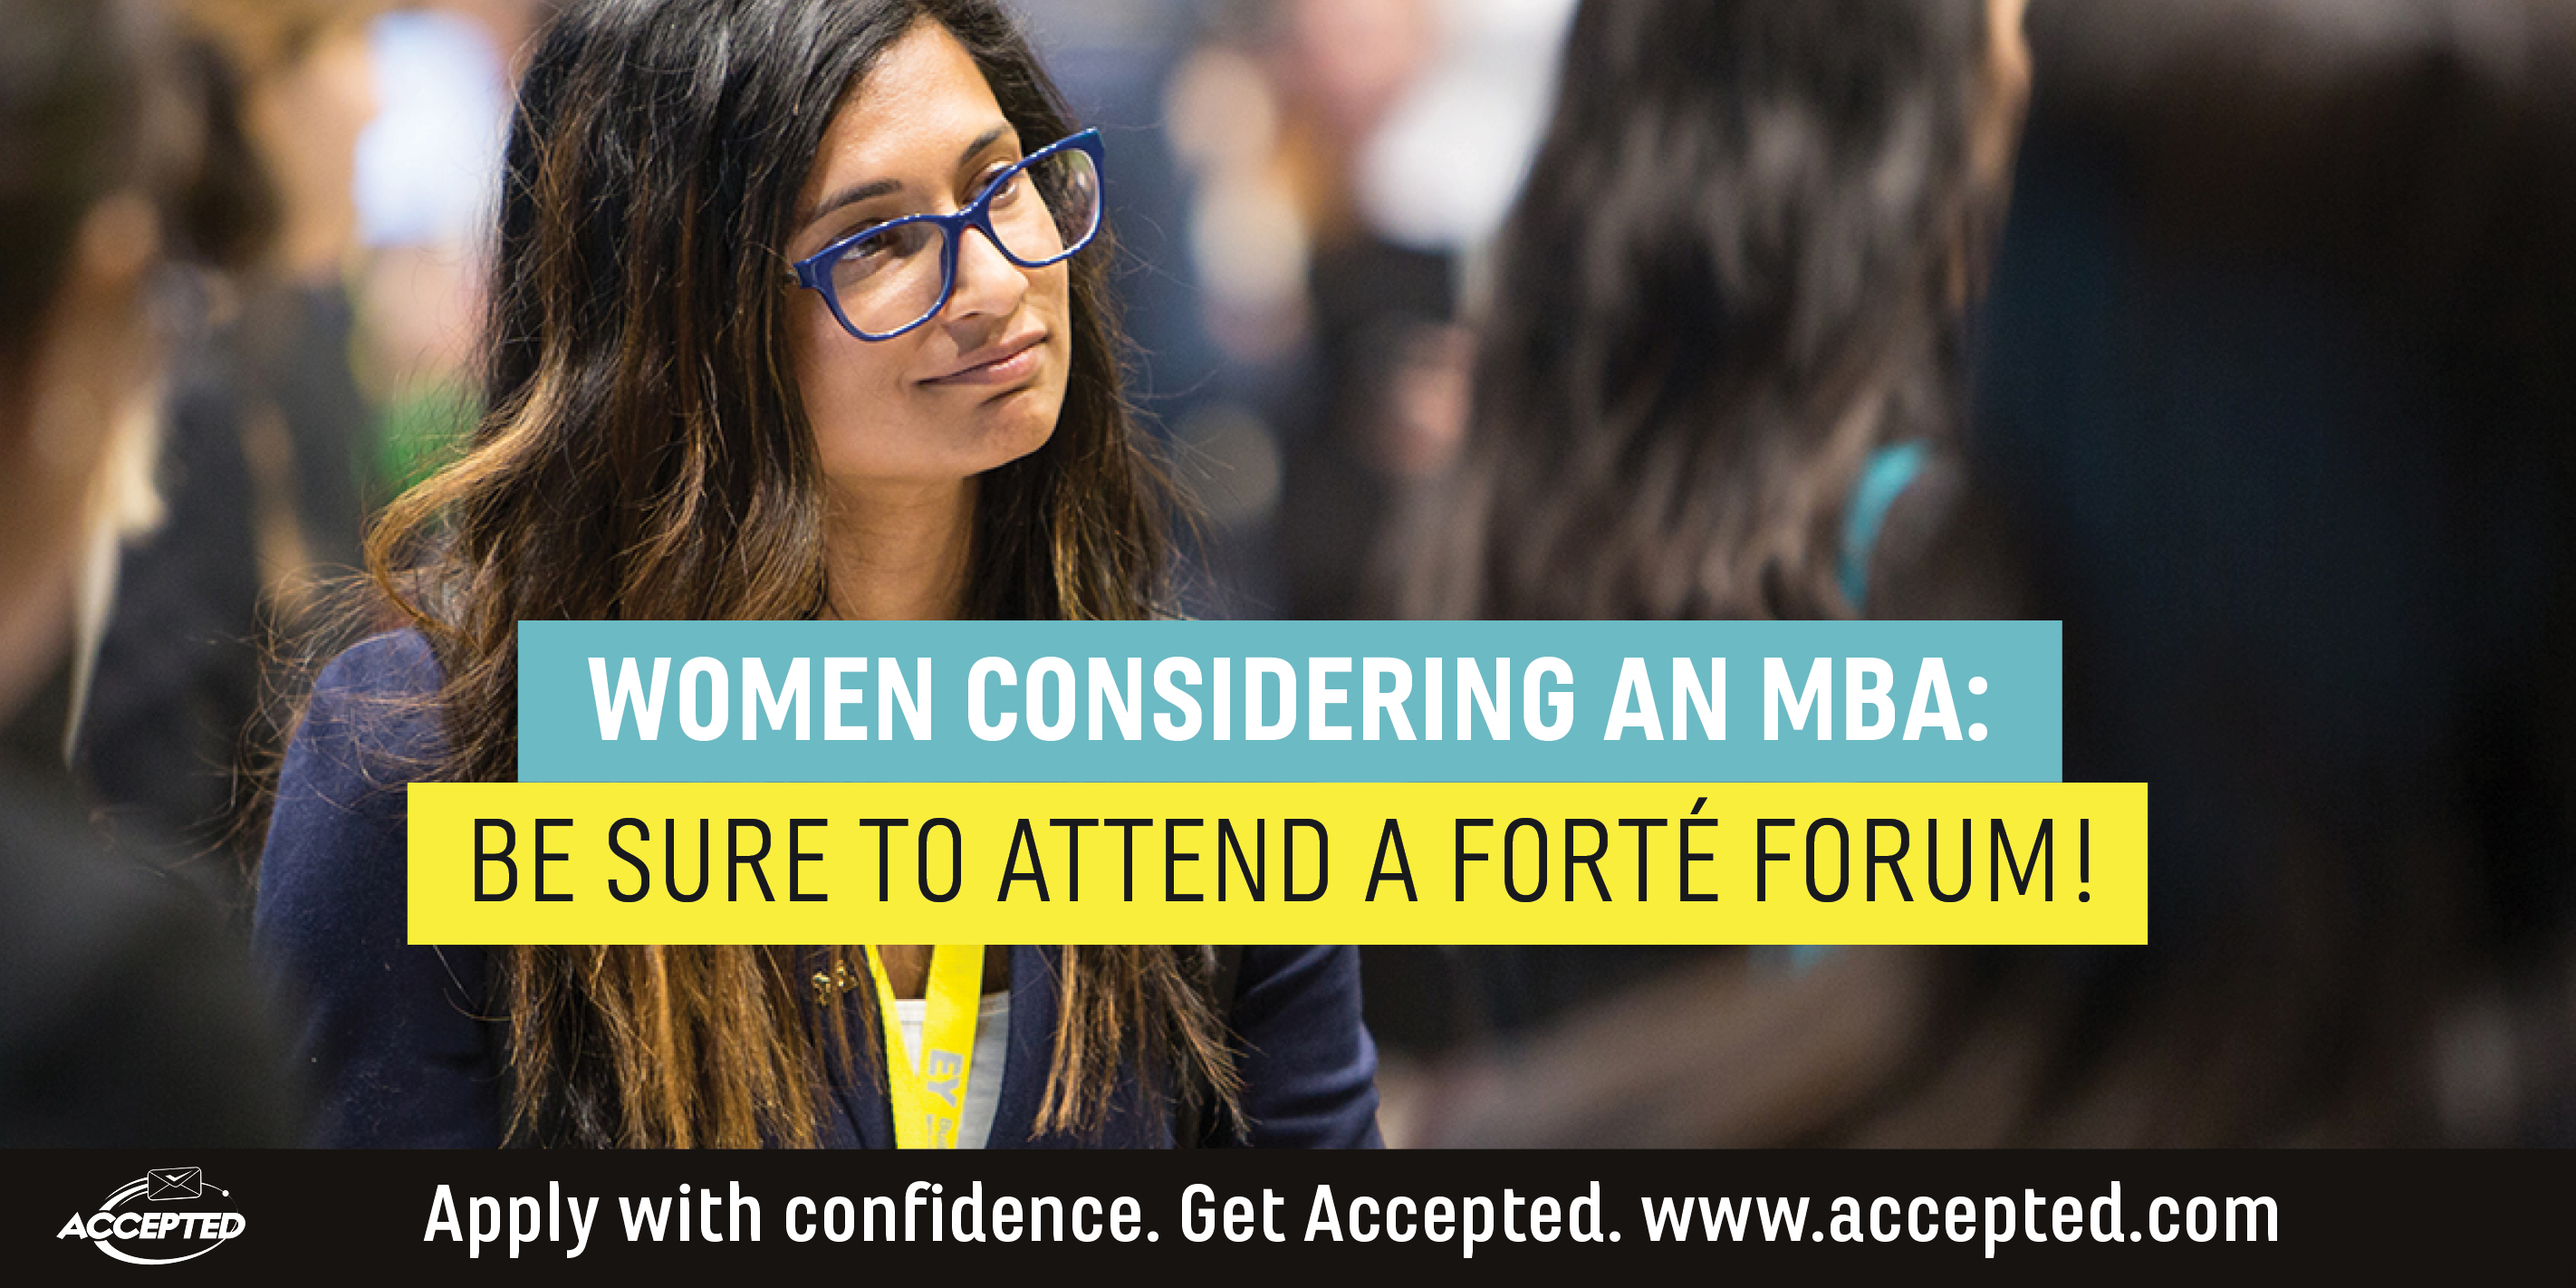 Women considering an MBA be sure to attend a Forte forum